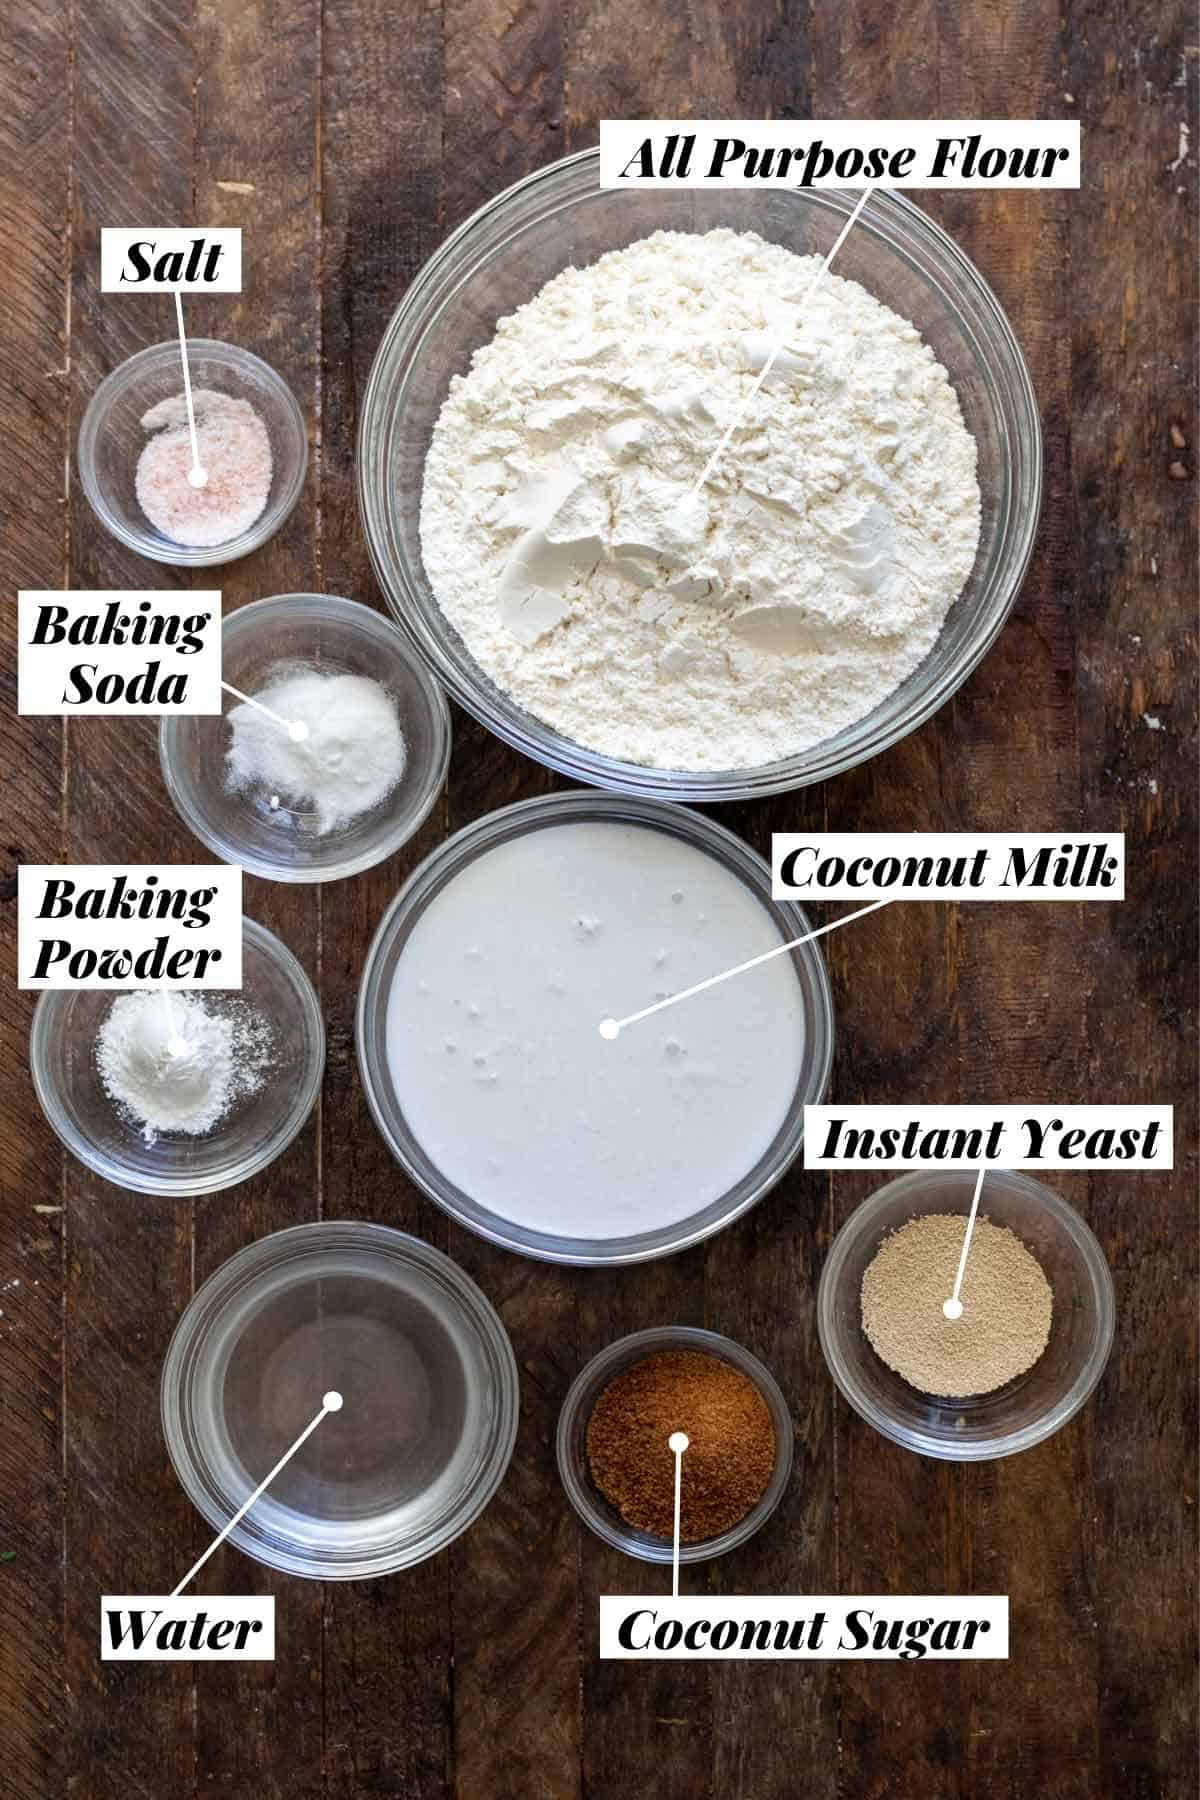 Ingredients needed for naan measured out into individual bowls and labeled.